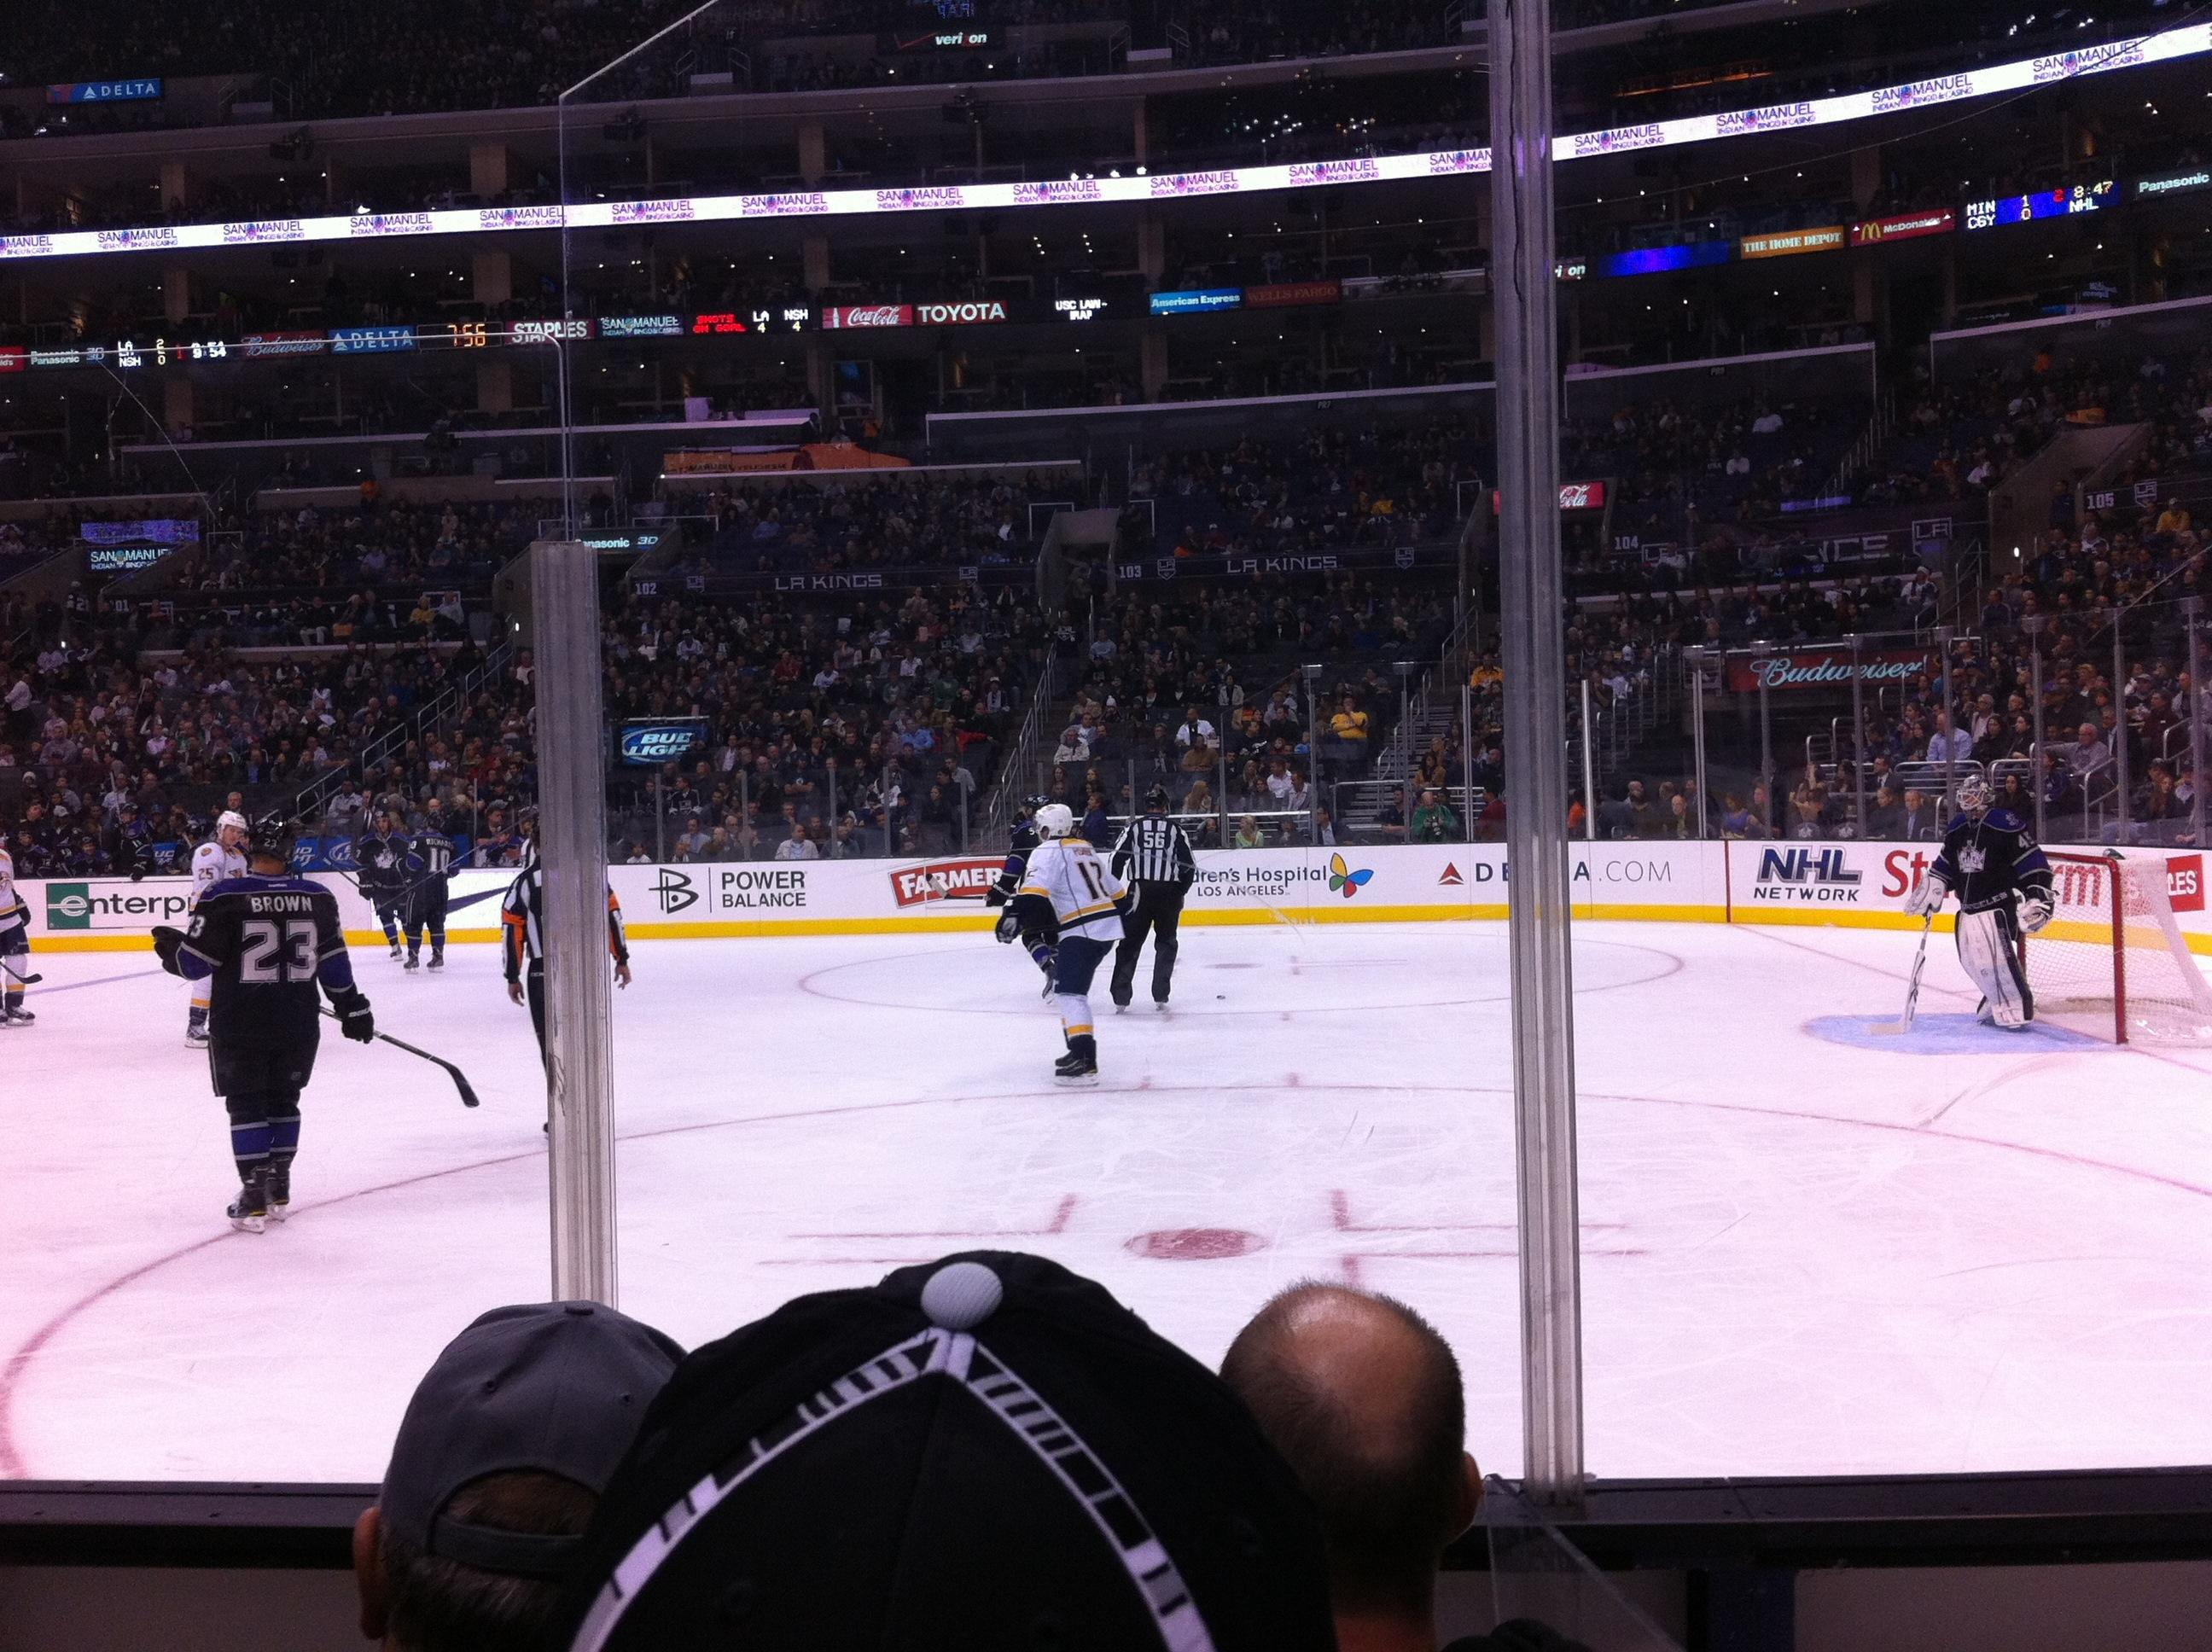 Staples Center Section 109 Row 4 Seat 2